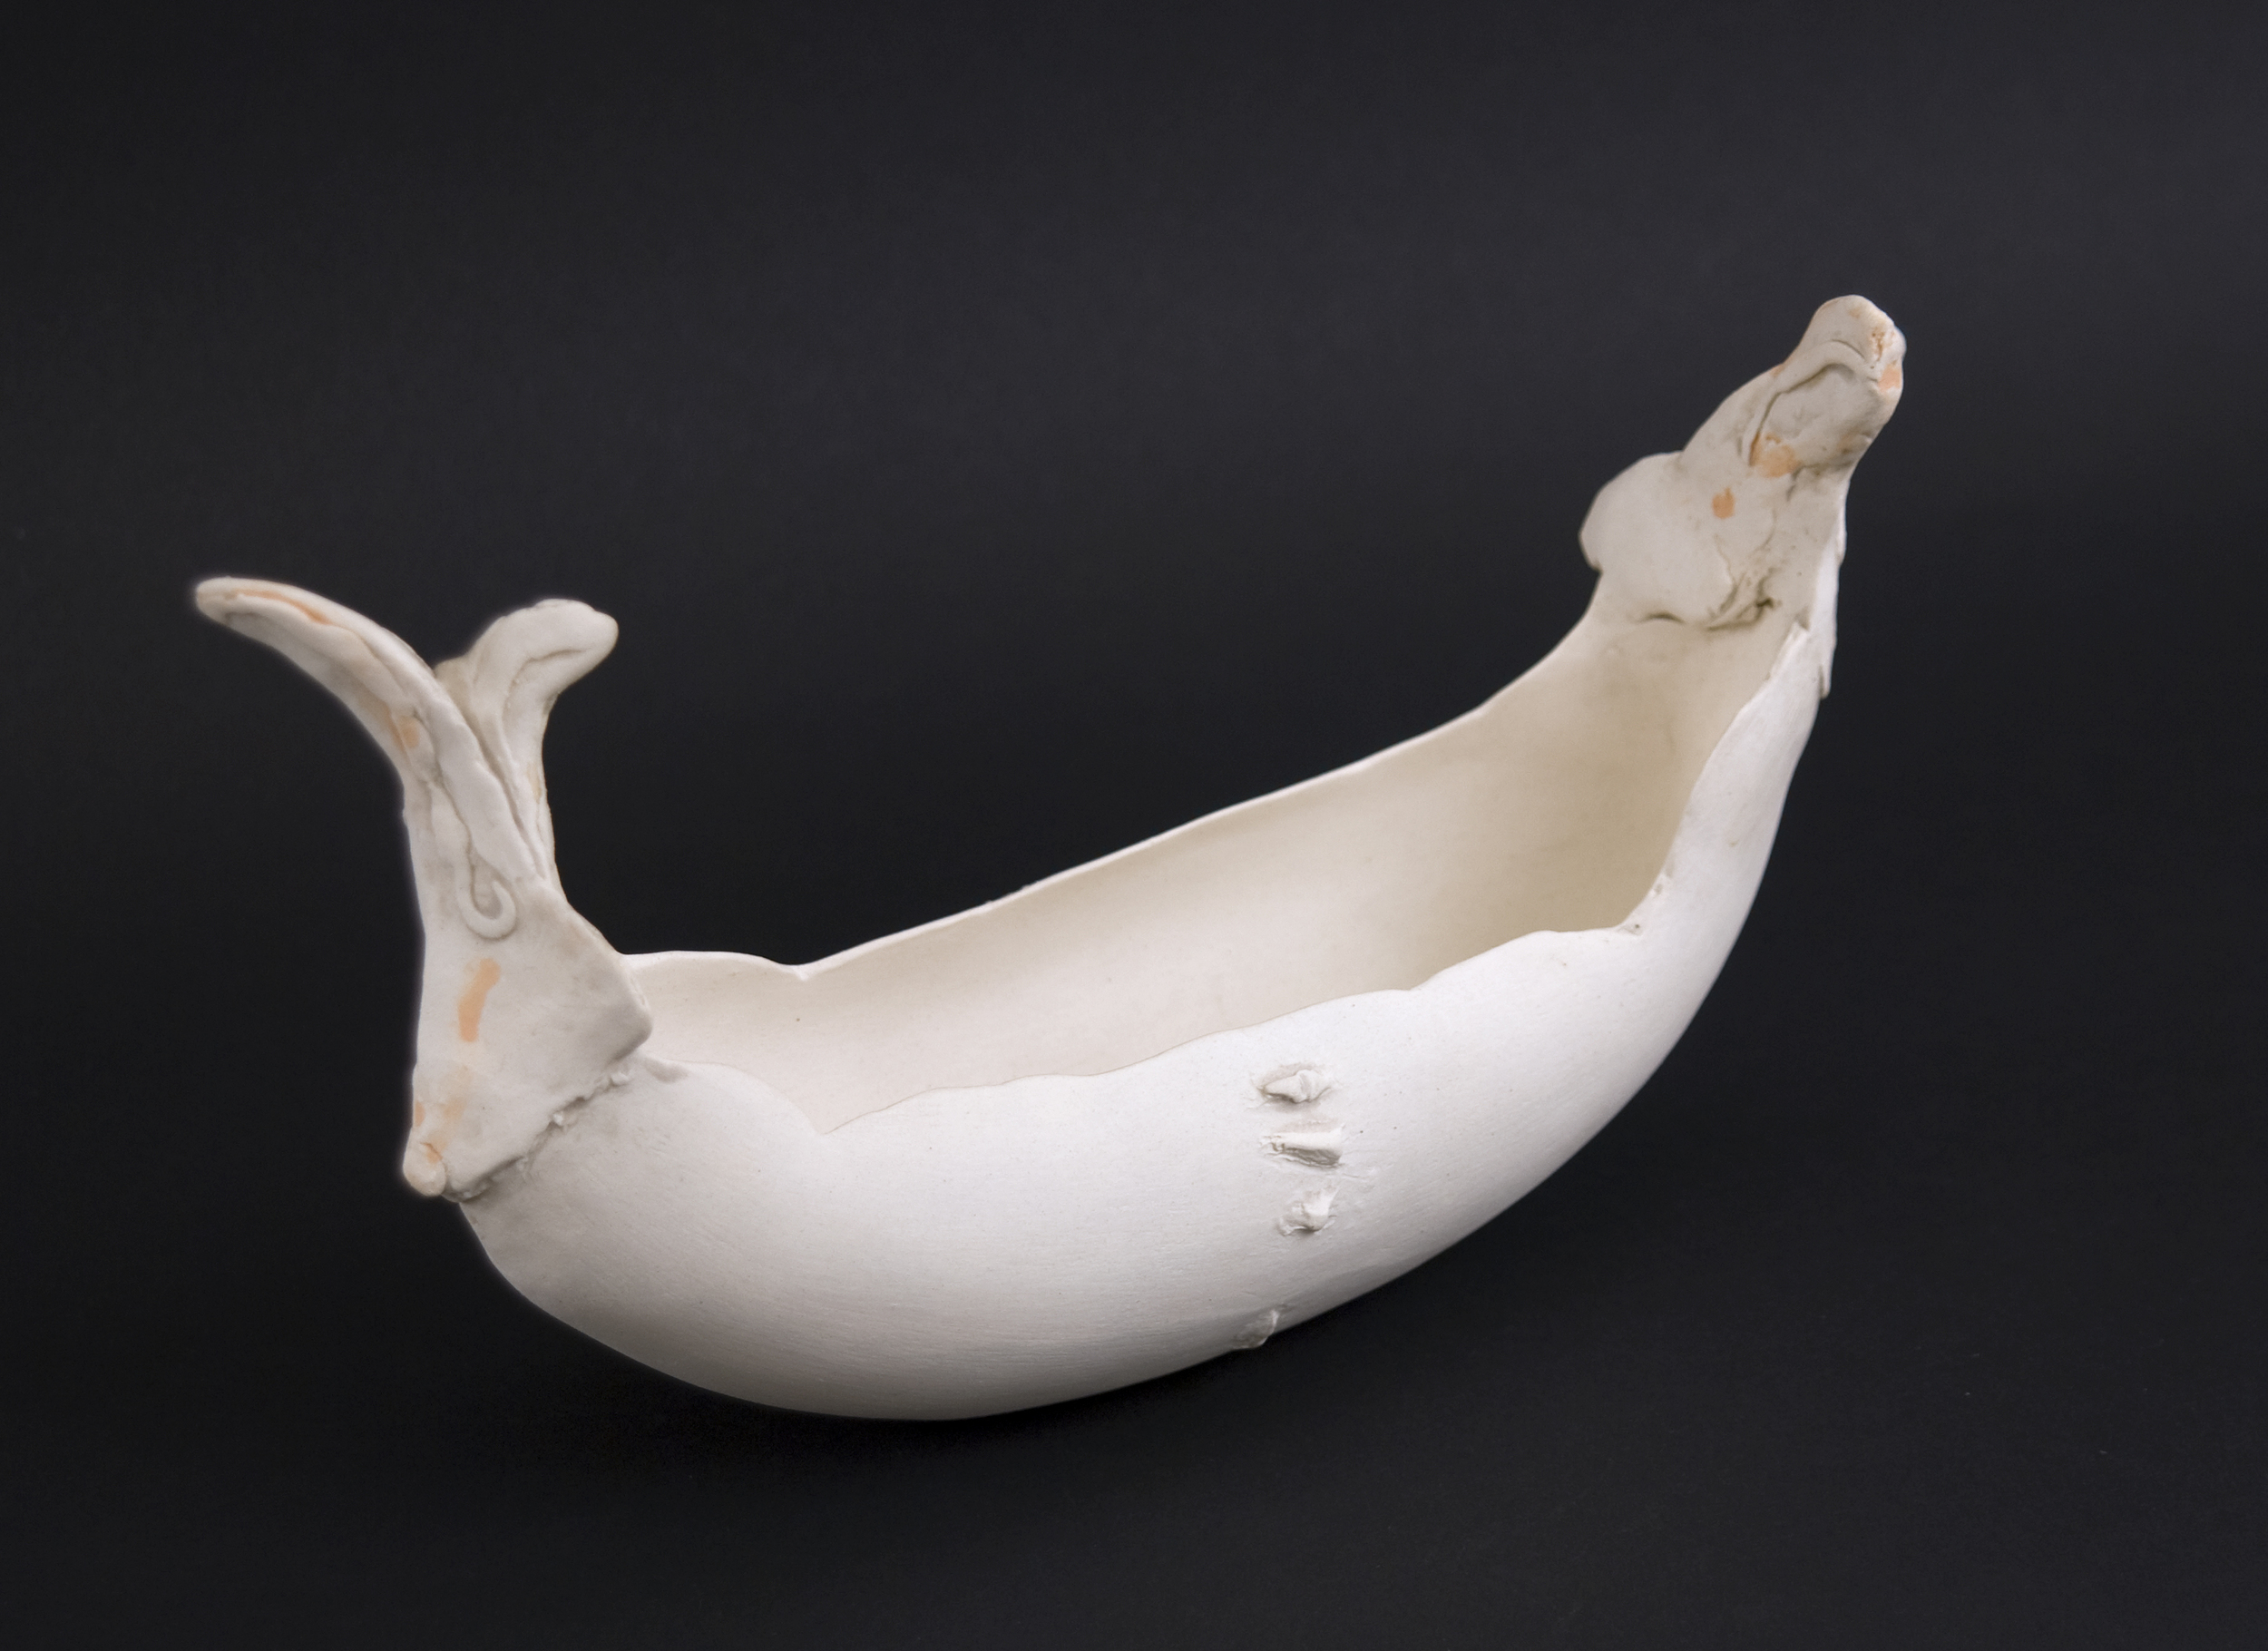 Kyoko Hori    Object- Rabbit with Signed Wooden Box  , 2003 Porcelain 9 x 3 x 5 inches / 22.9 x 7.6 x 12.7 cm / KYH 3